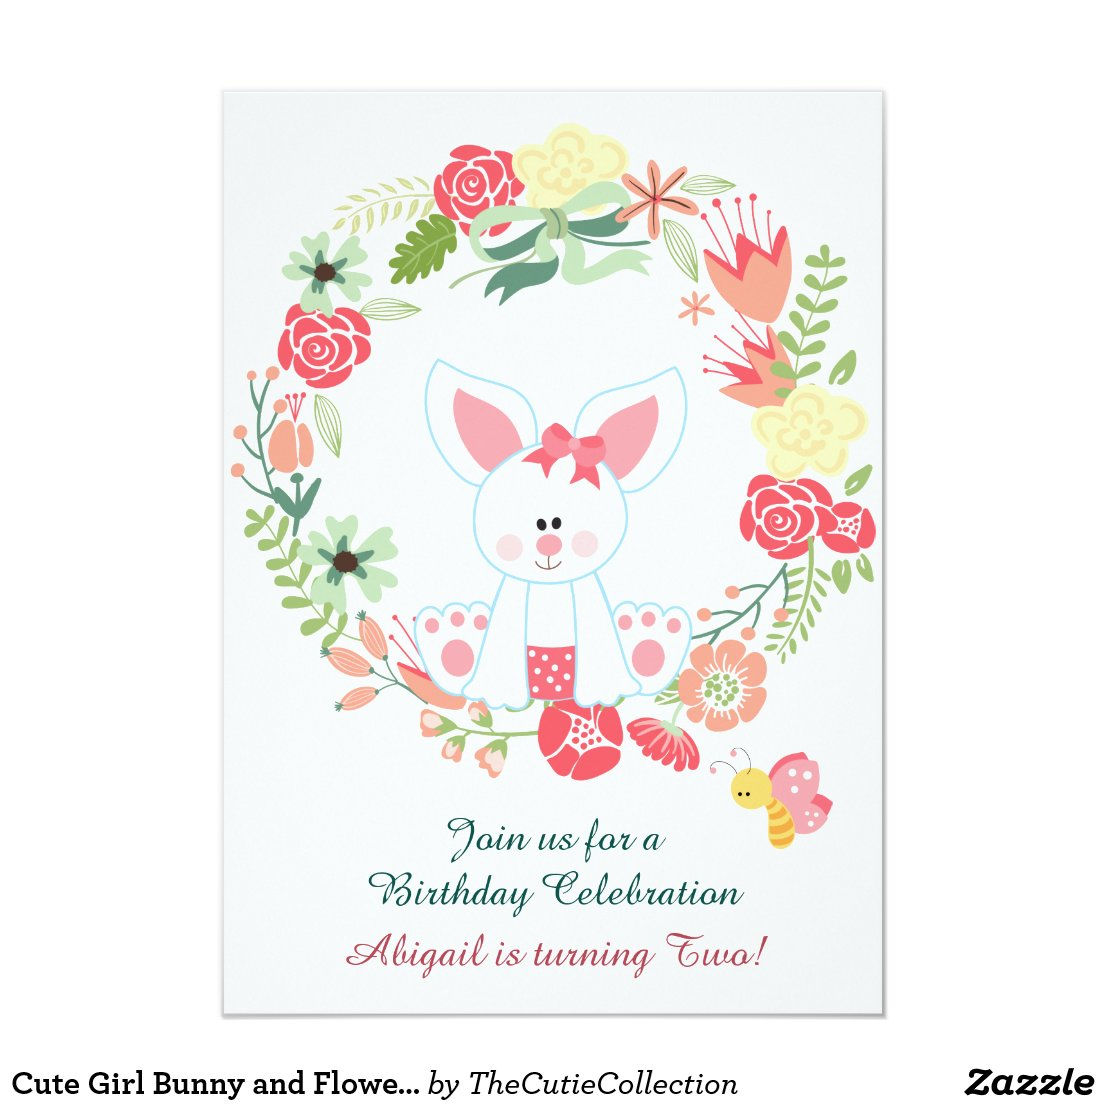 Cute Girl Bunny and Flower Wreath Birthday Card